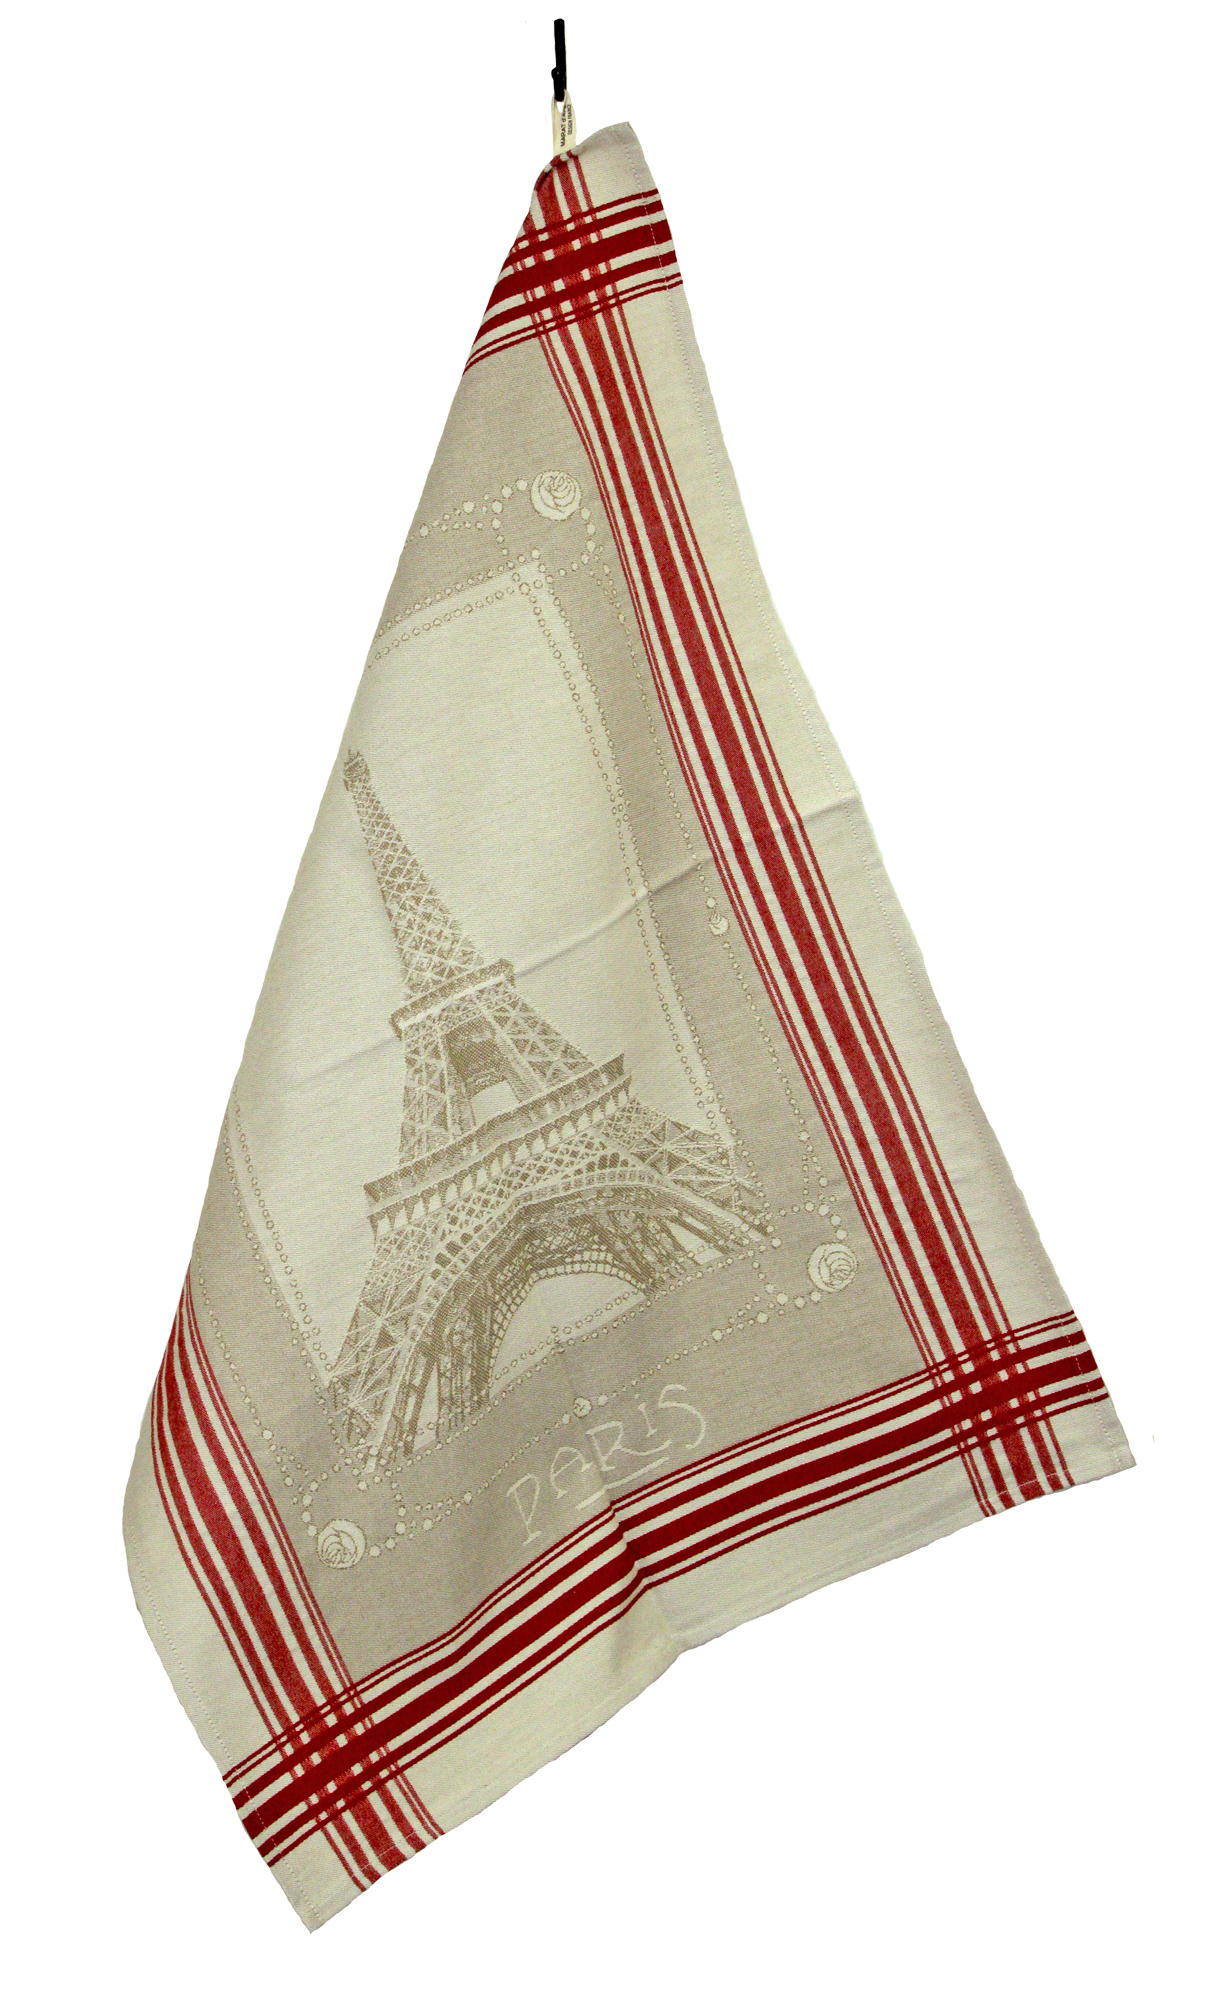 """Parisien French Jacquard Tea Towel - Collection """"Eiffel Tower"""" Beige/Red, Size: 20 x 28 inches, Price CAN$19.95"""